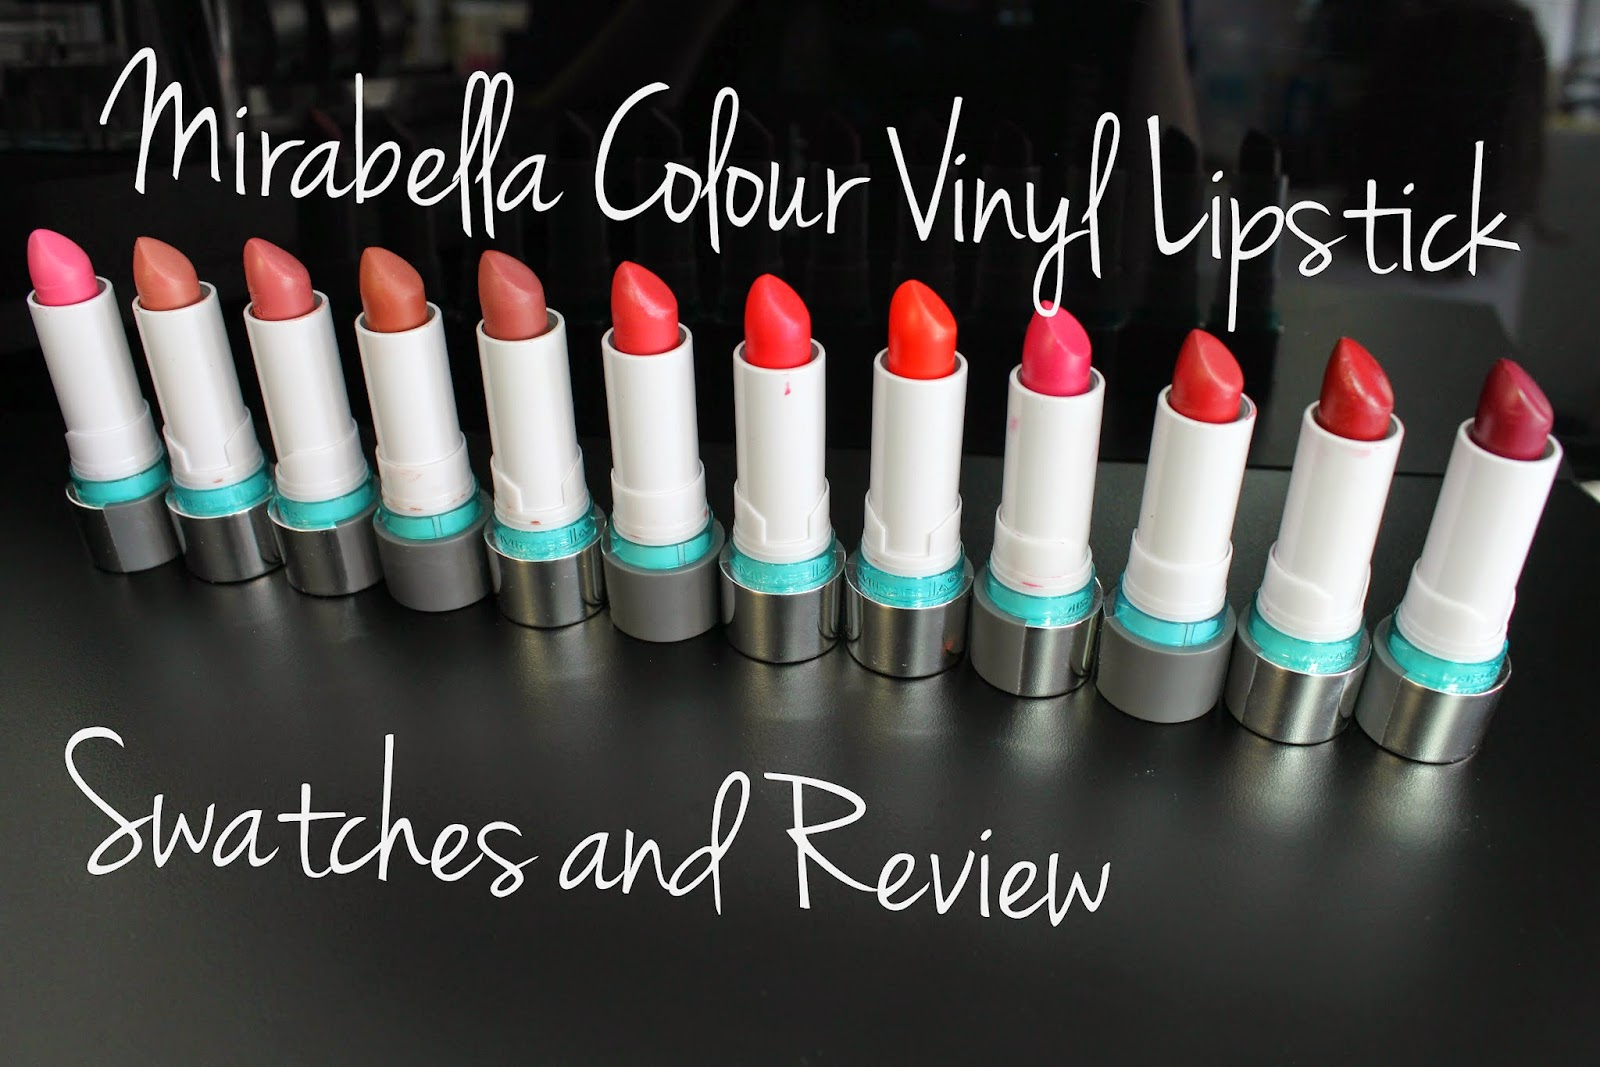 Communication on this topic: Mirabella Colour Vinyl Lipstick, mirabella-colour-vinyl-lipstick/